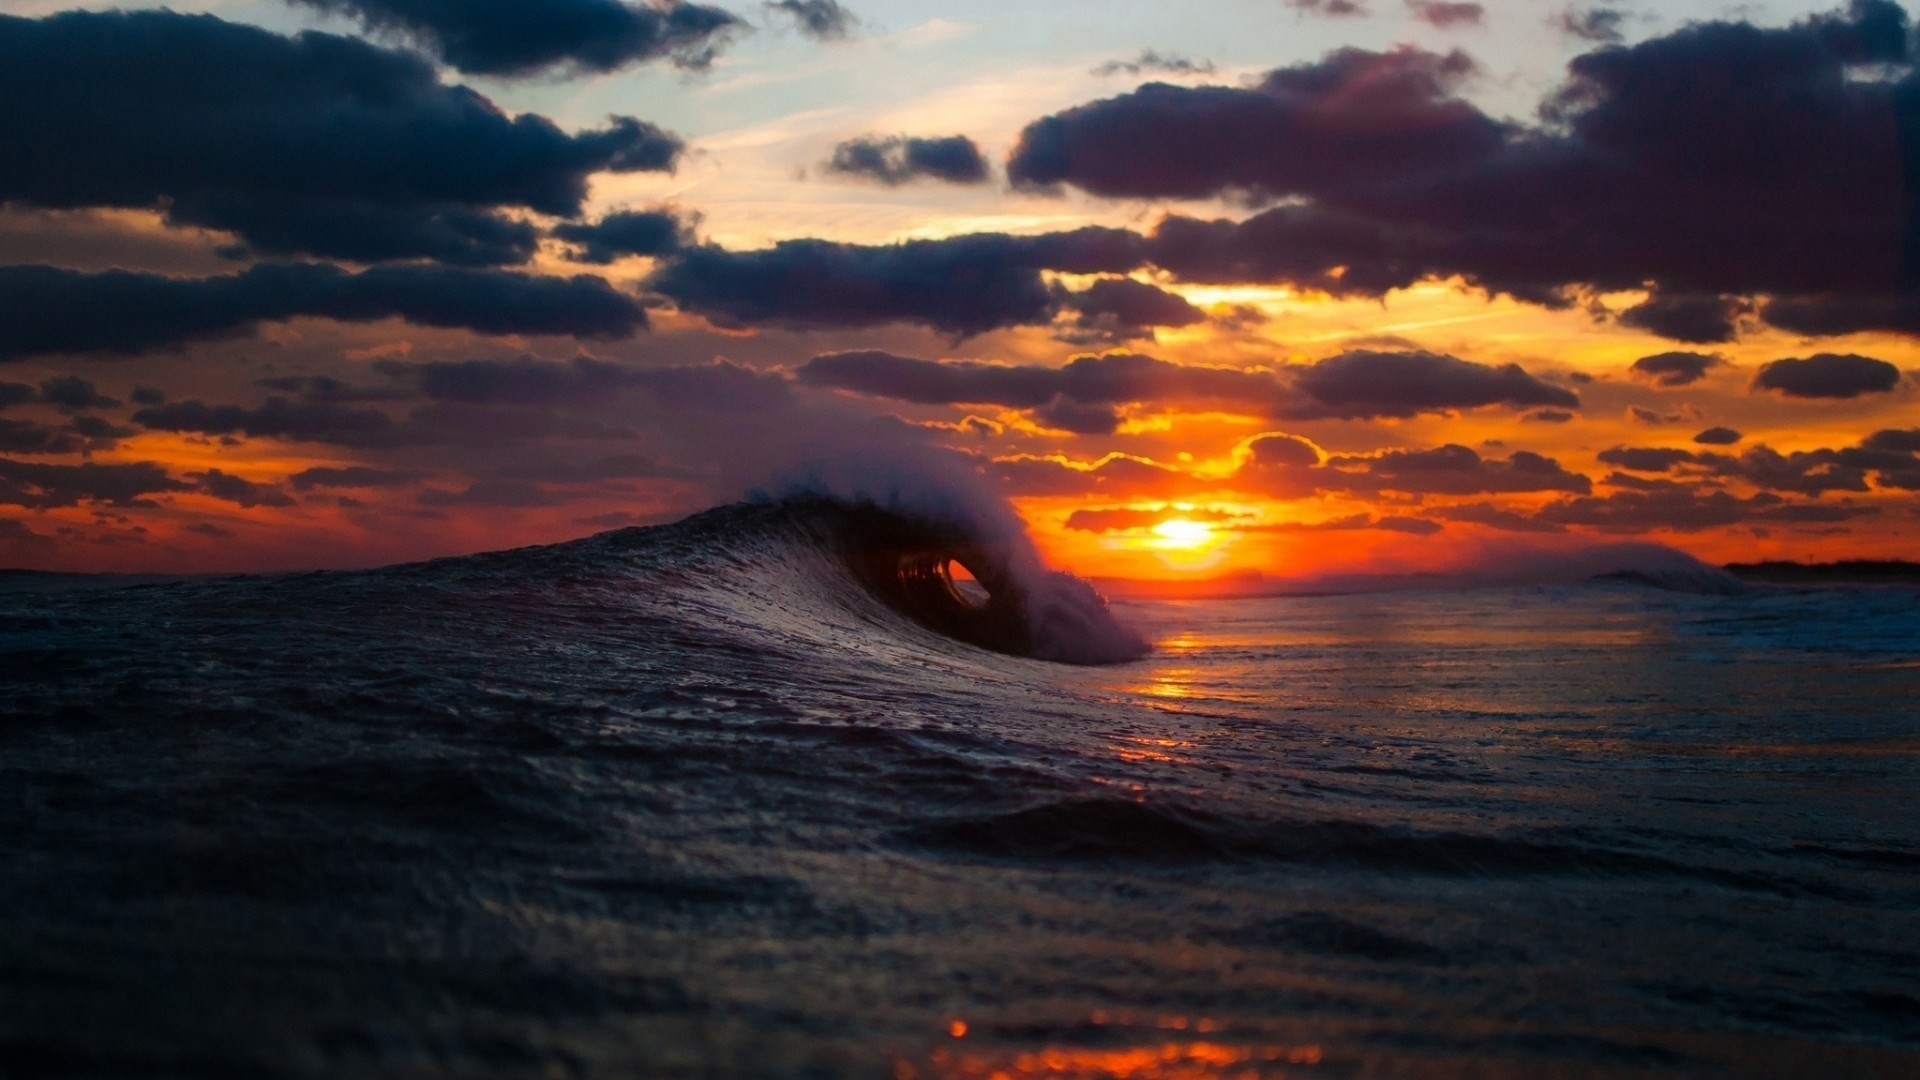 download wallpaper 1920x1080 sea, surf, wave, sunset hd background